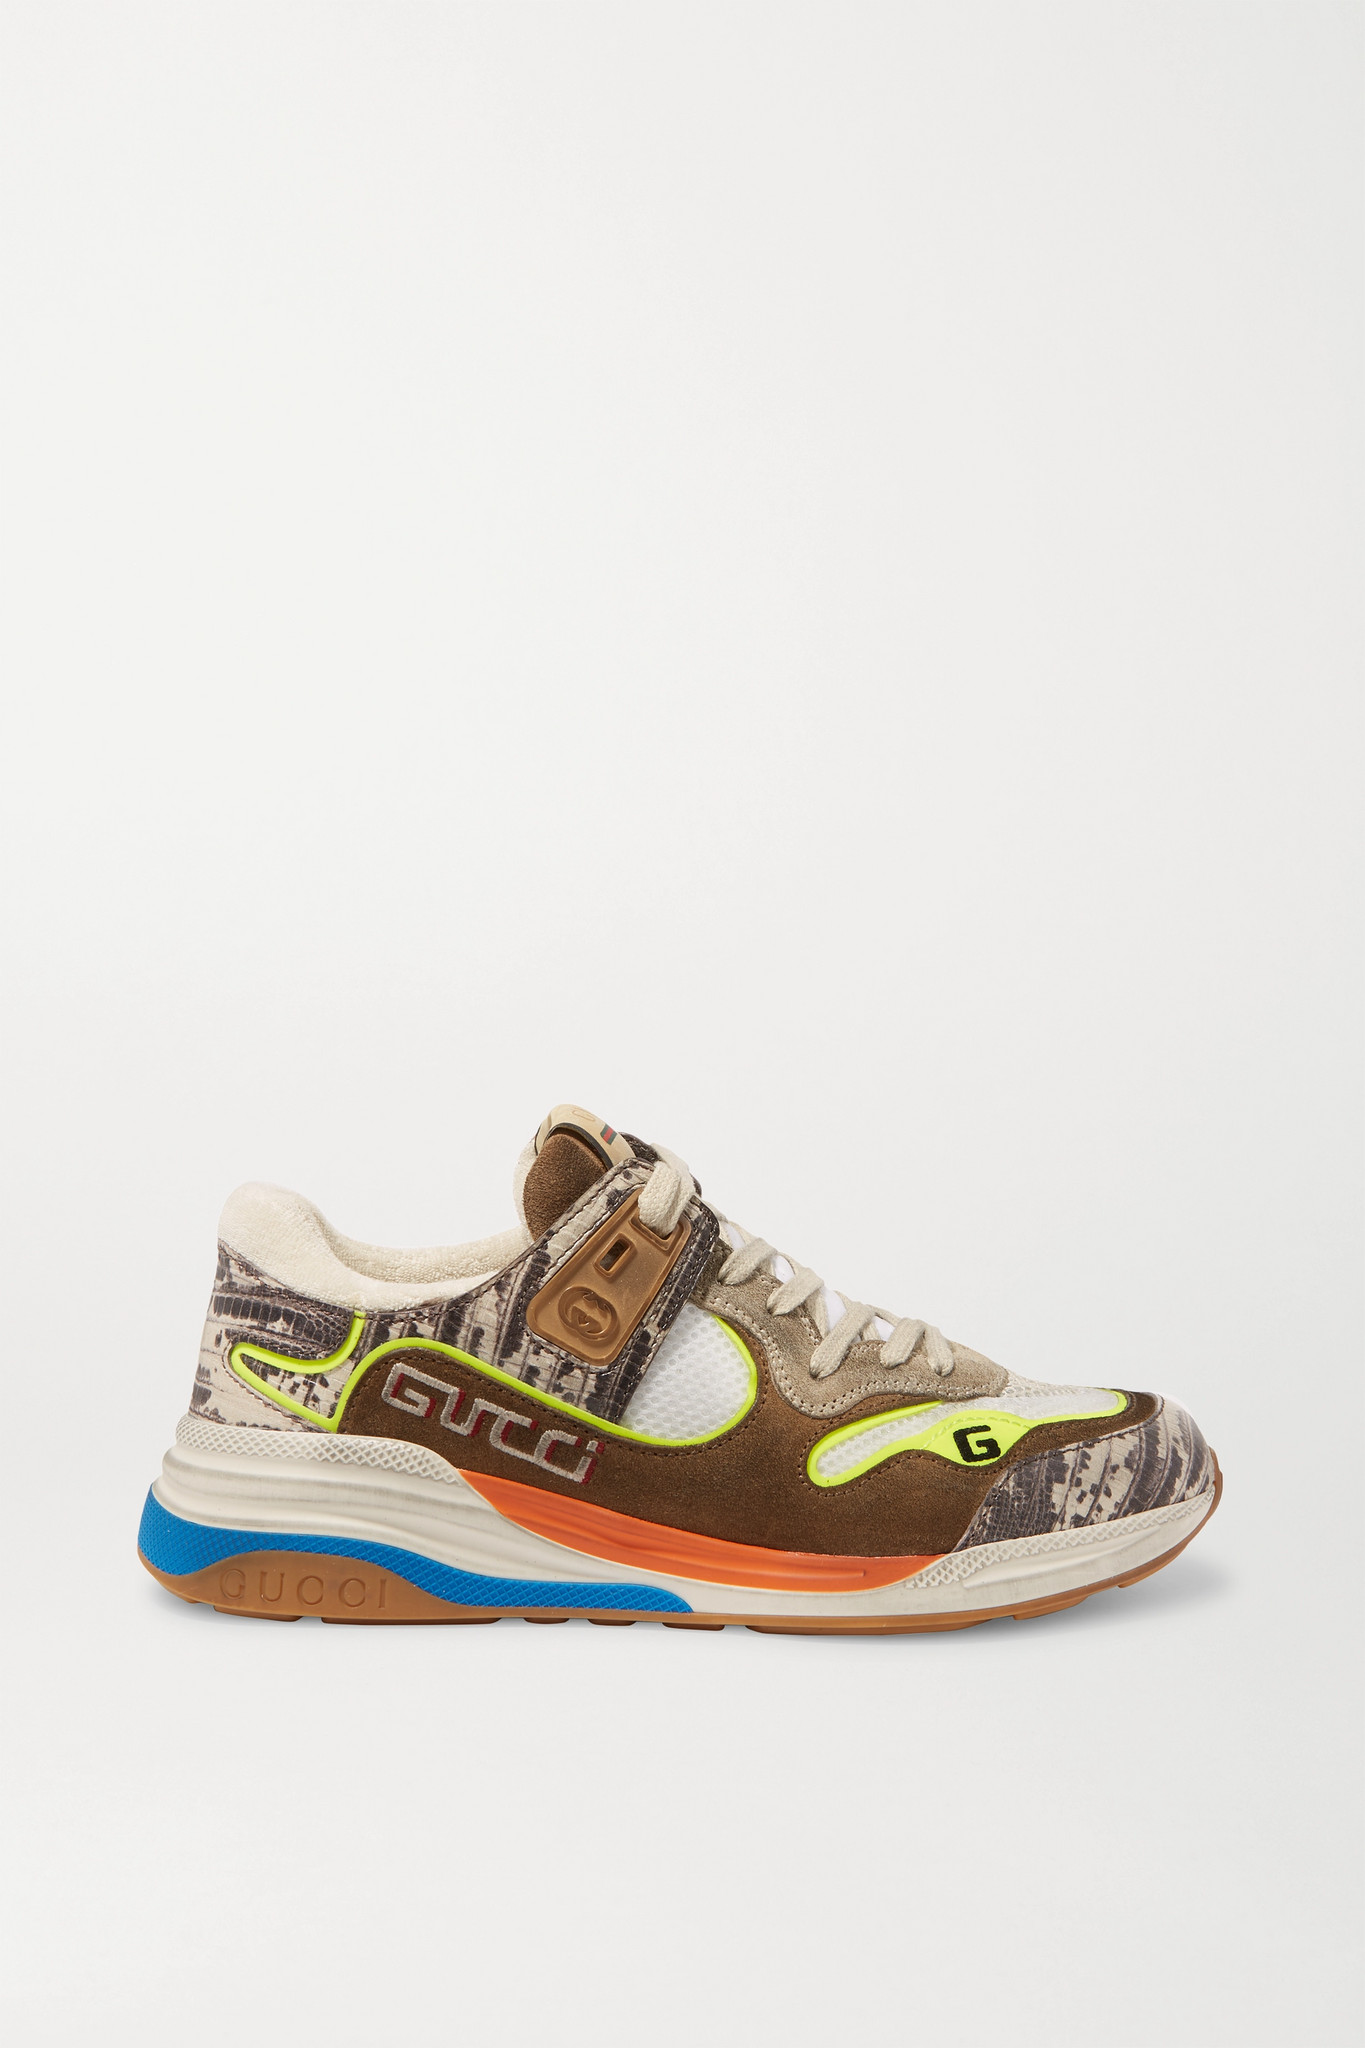 GUCCI - Ultrapace Snake-effect Leather, Mesh And Distressed Suede Sneakers - Brown - IT35